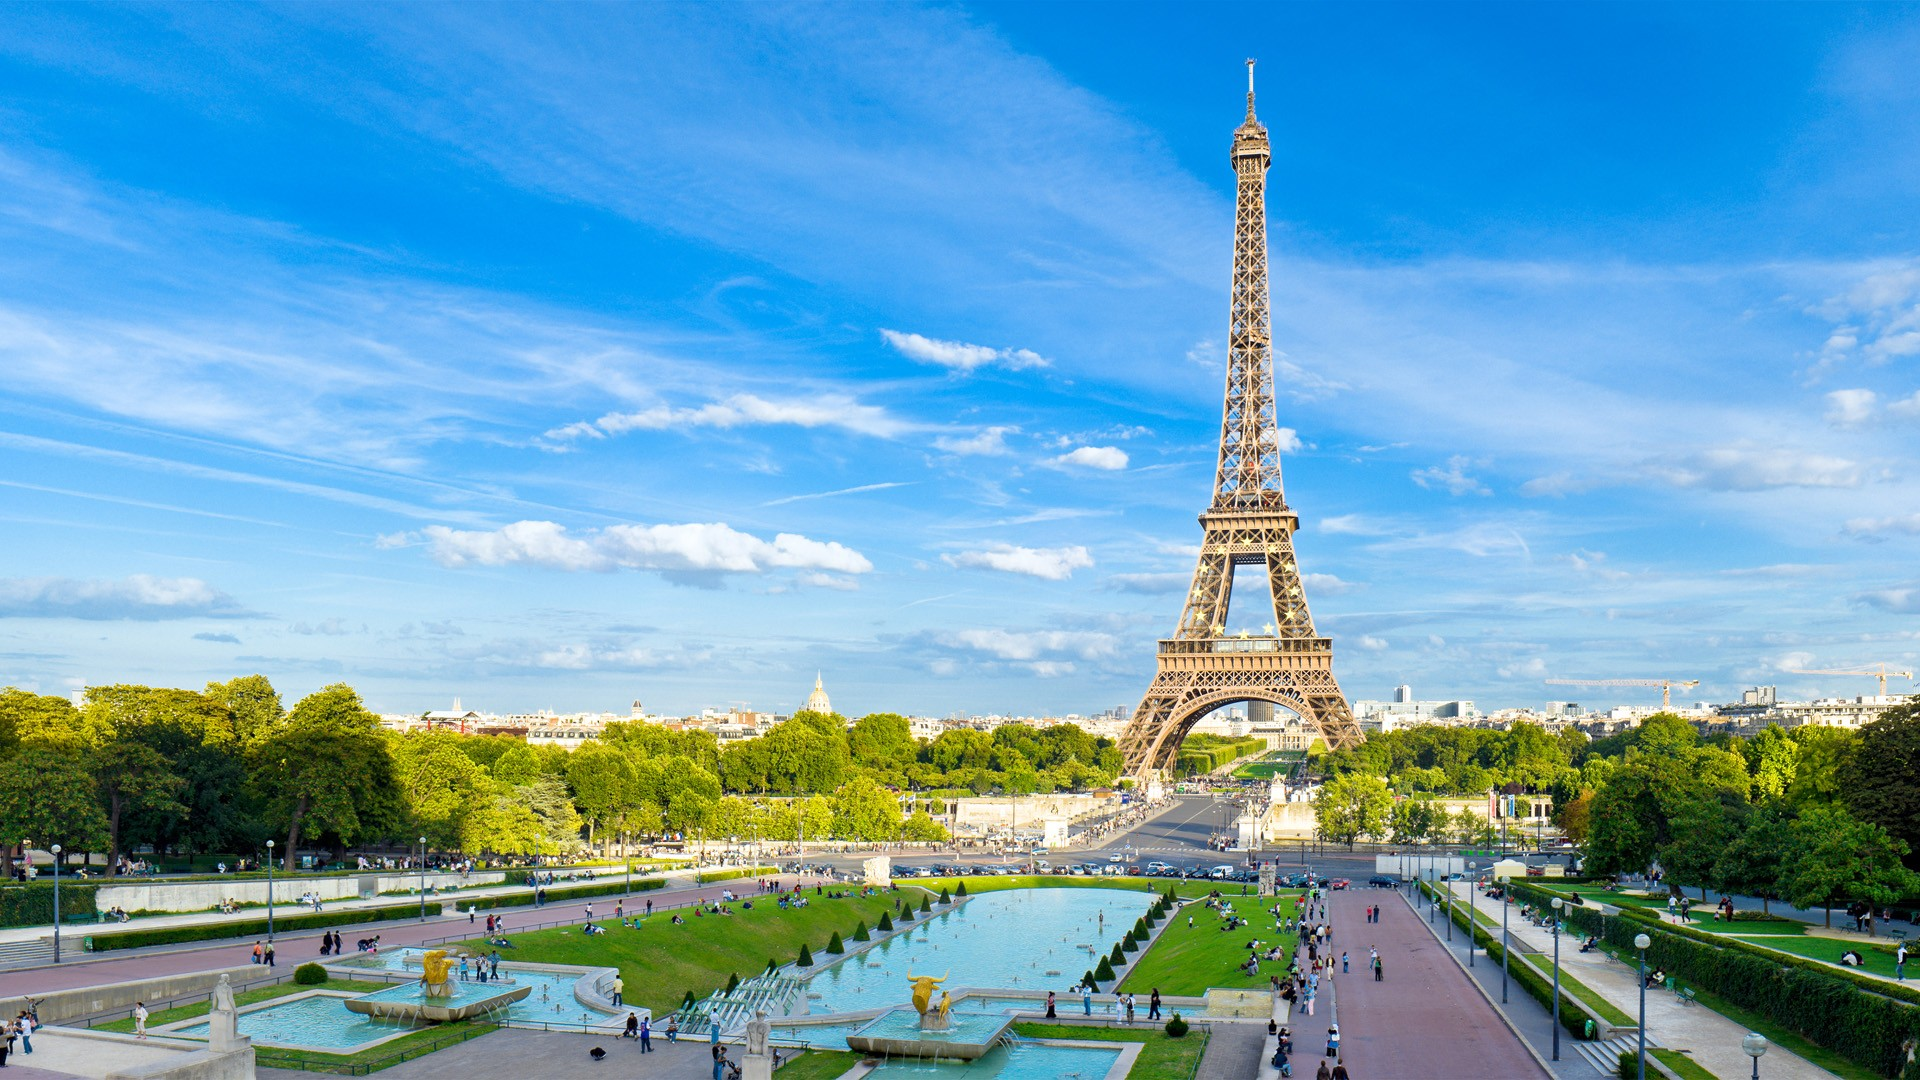 city of light,sidereal day,aspect,city,paris,pillar,regard,watch,eiffel,capital of france,daylight,sight,position,tower,day,view